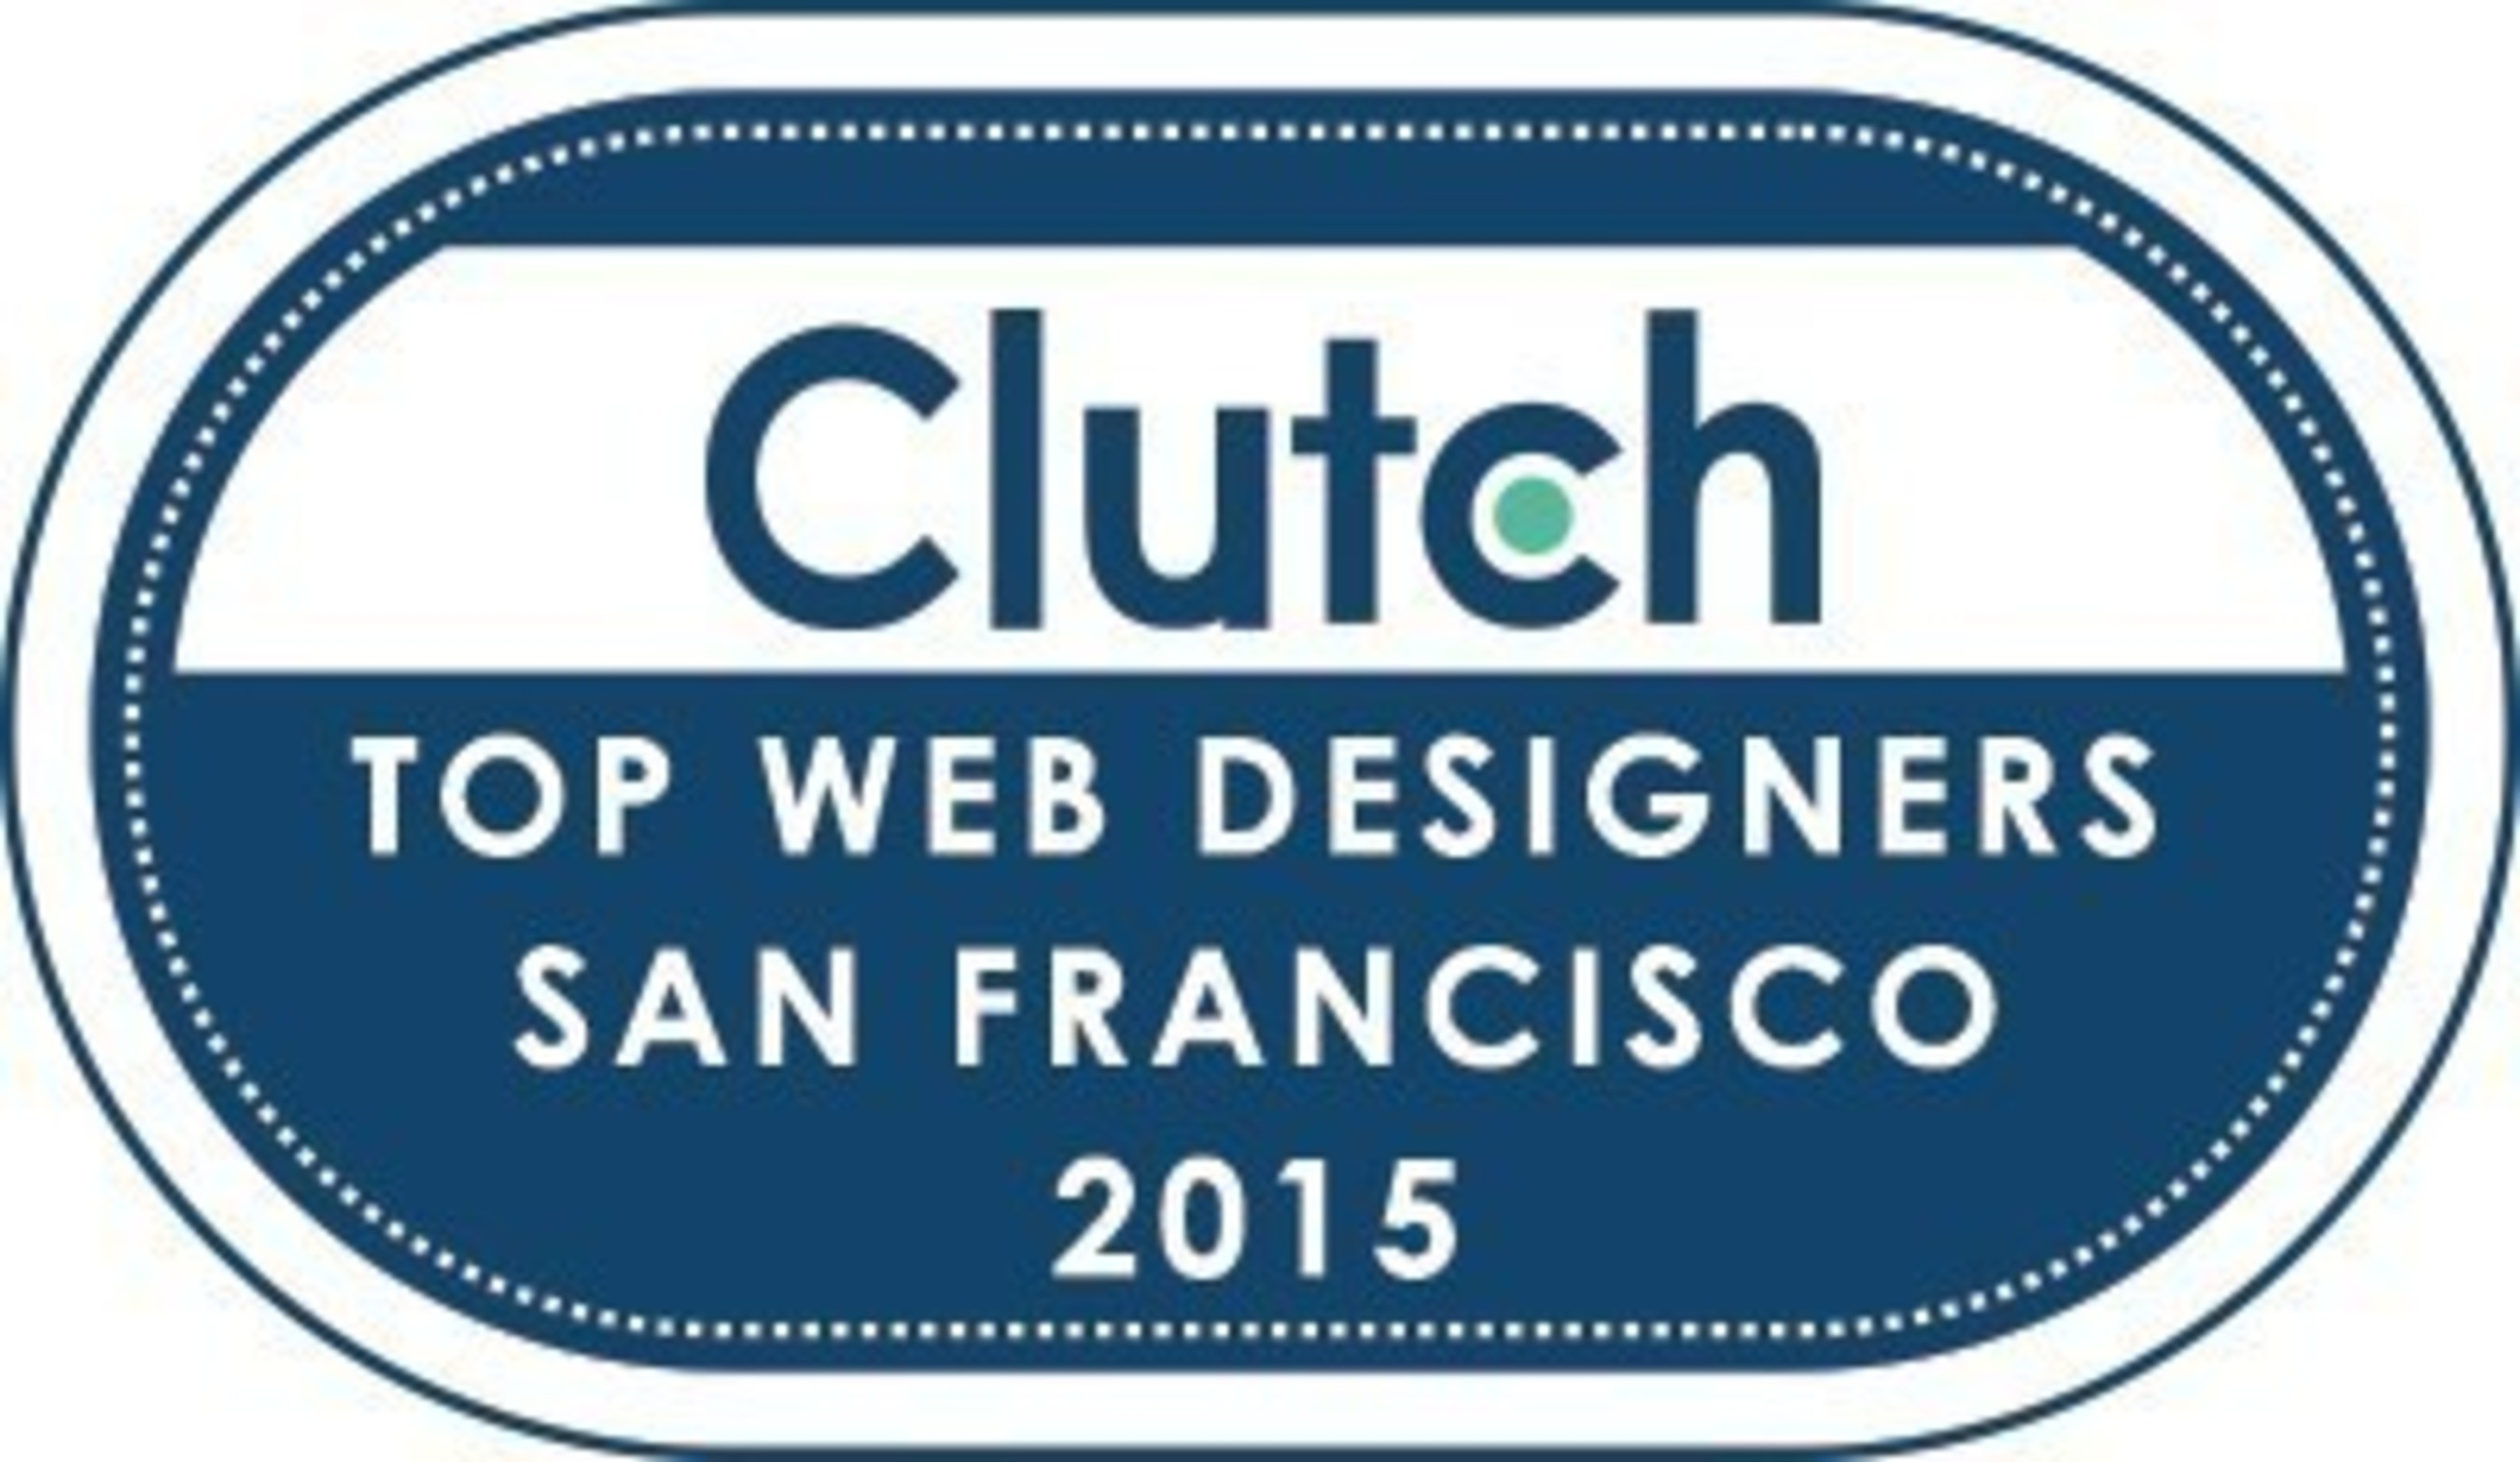 Research Firm Clutch Publishes Analysis of Leading Web Designers & Developers in San Francisco